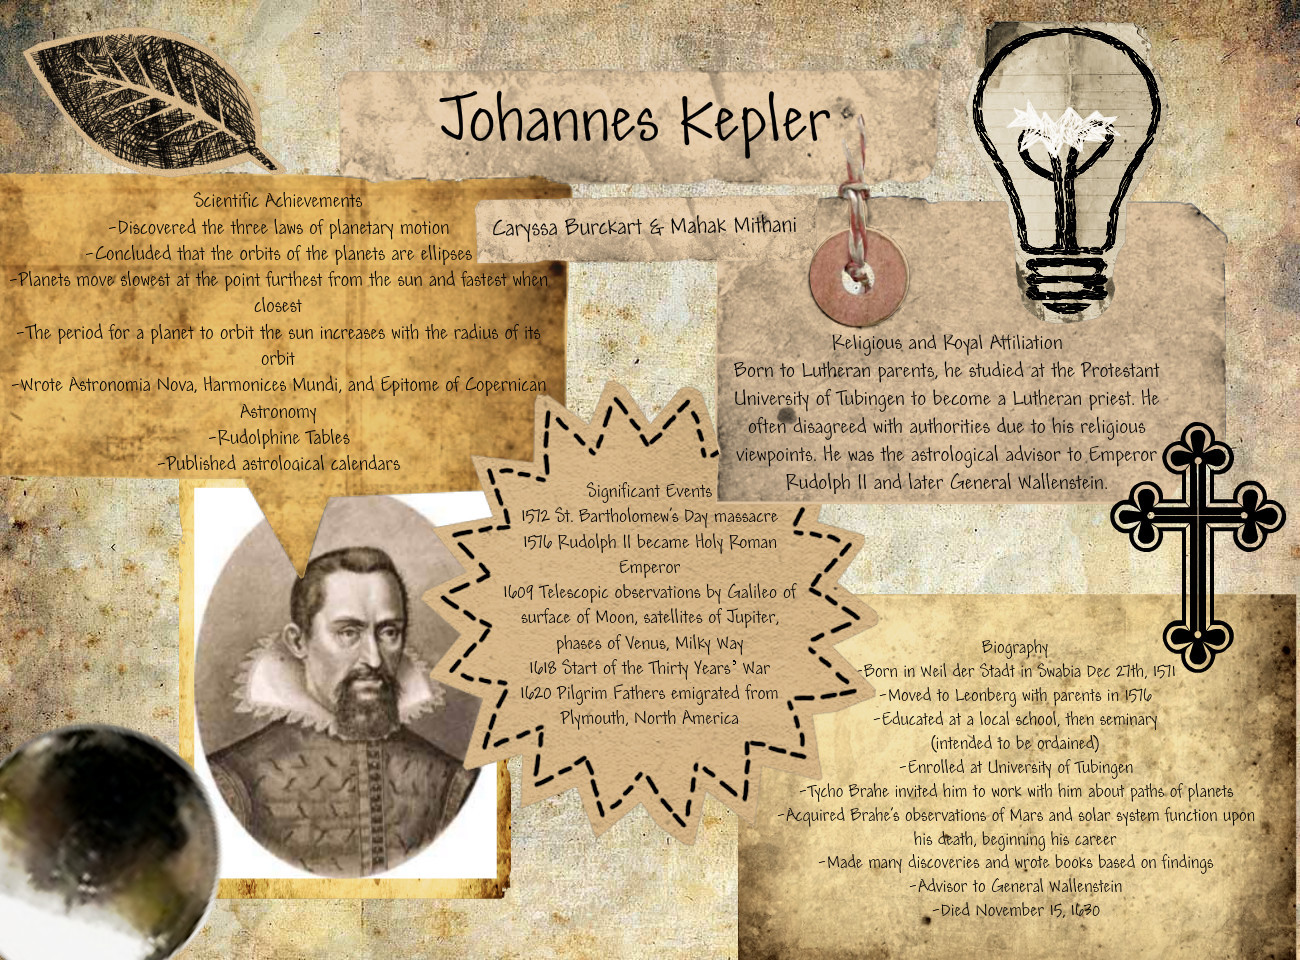 johannes kepler biography Home → sparknotes → biography study guides → johannes kepler johannes kepler table of contents context general summary important.